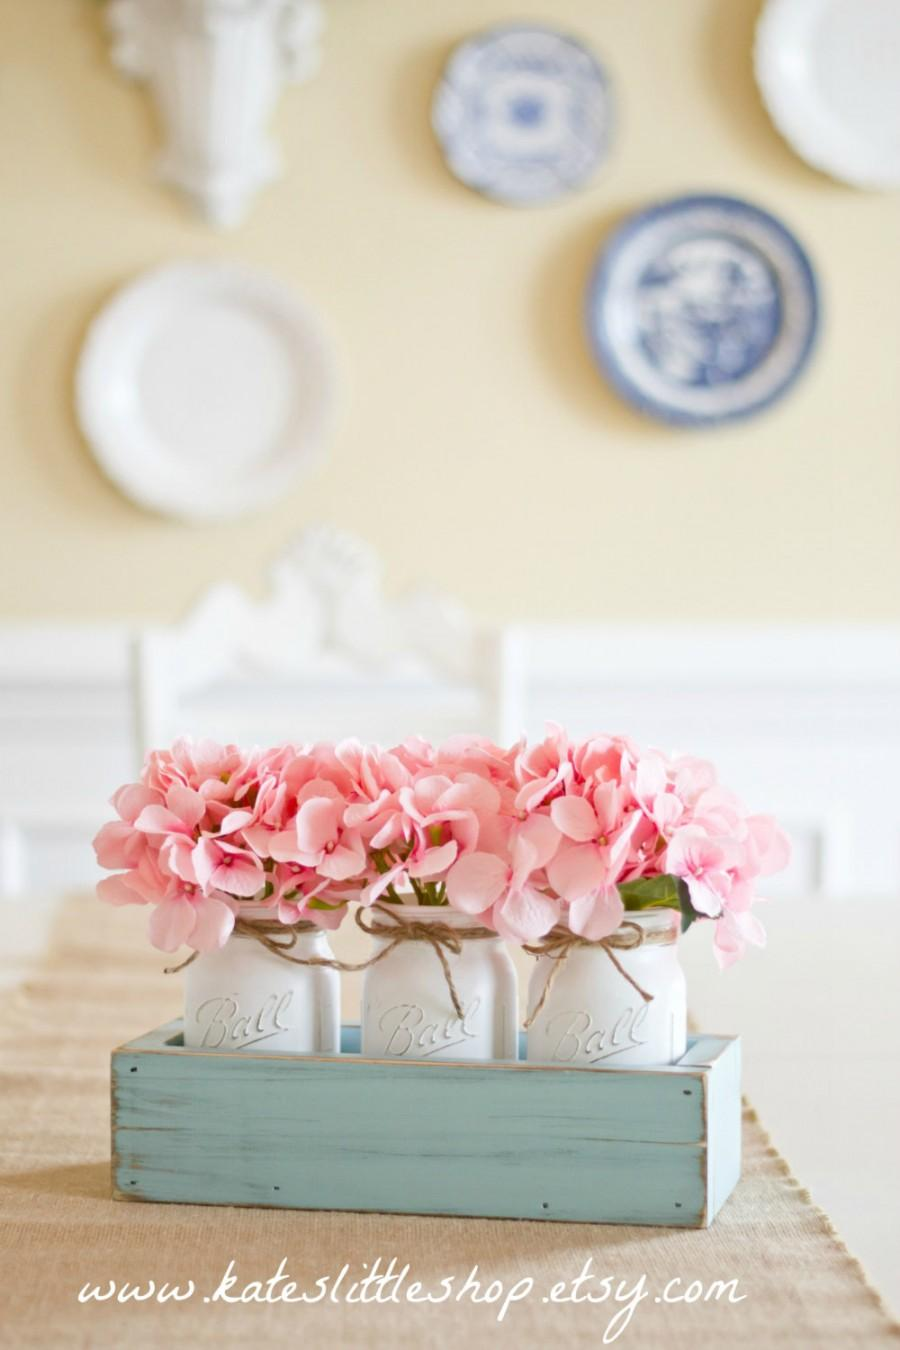 Mothers Day Rustic Planter Box With 3 Vintage Style Mason Jars ...